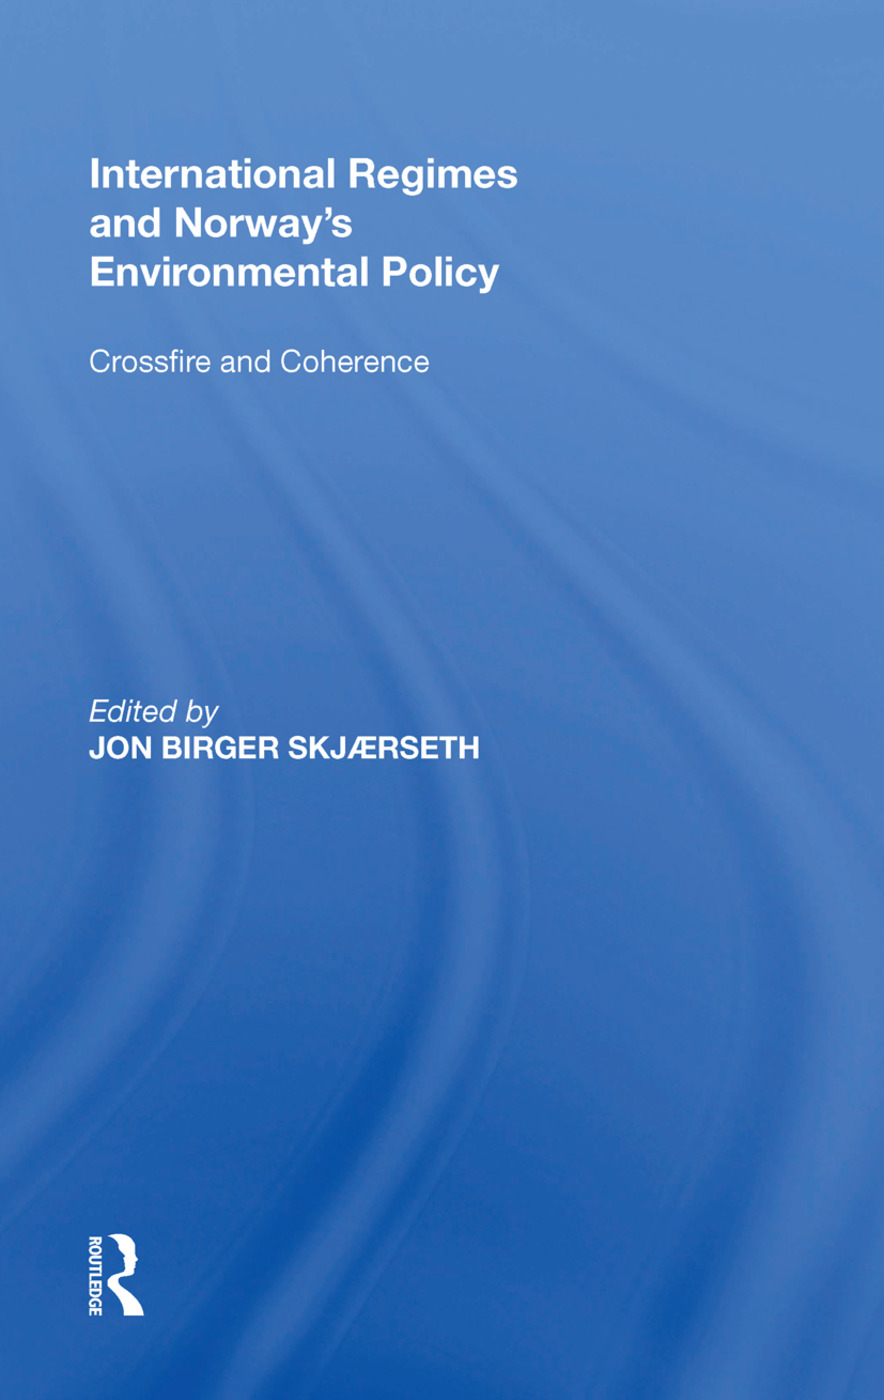 International Regimes and Norway's Environmental Policy: Crossfire and Coherence, 1st Edition (Hardback) book cover